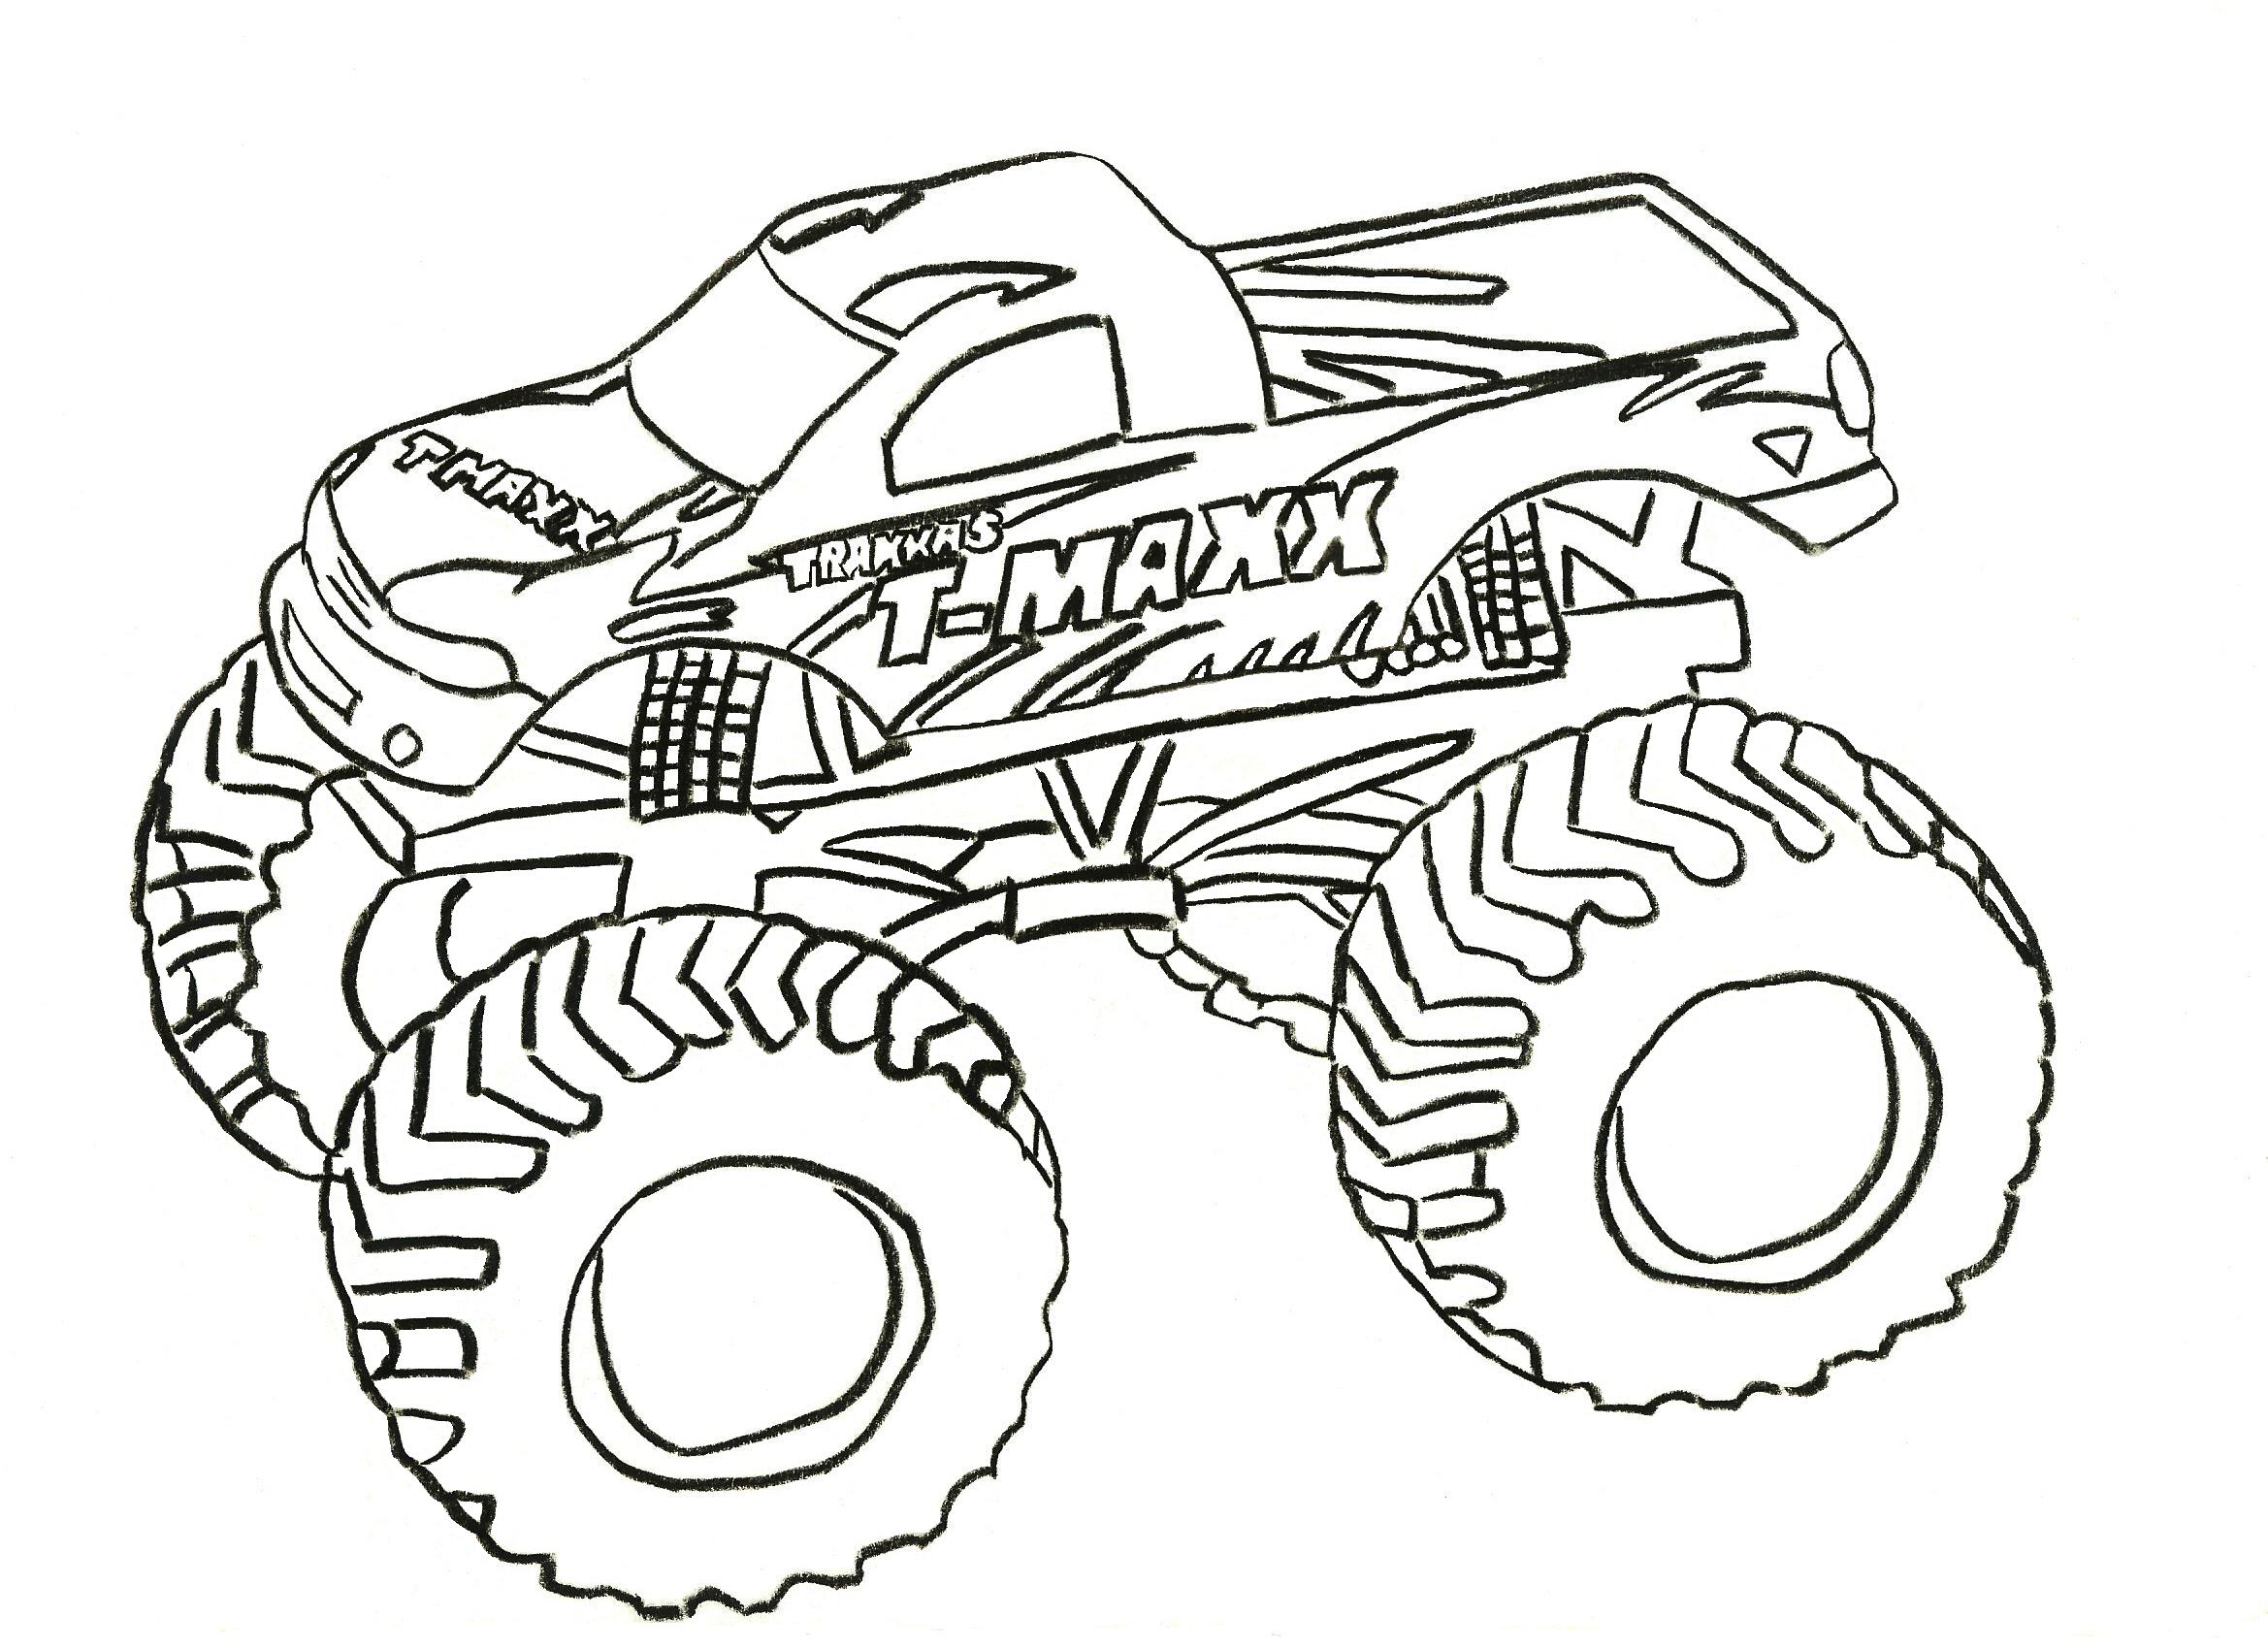 It's just an image of Légend Monster Truck Printable Coloring Pages